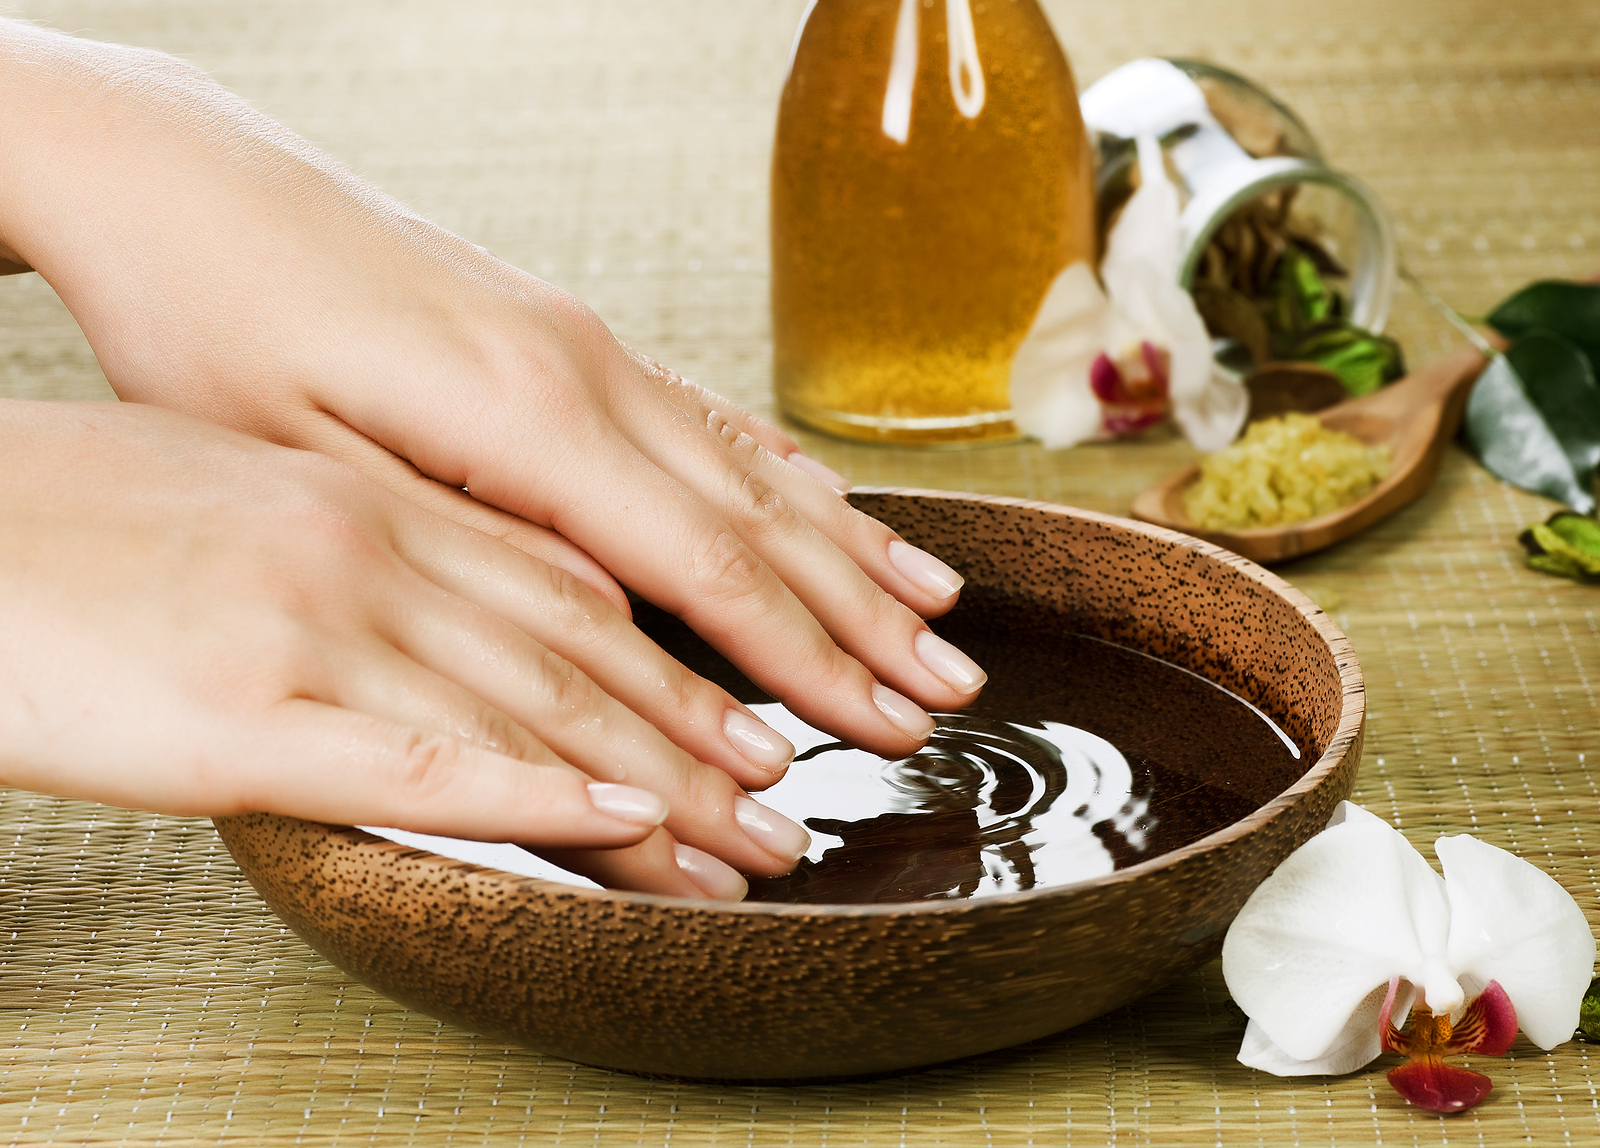 Nail salon stock photos 1600x1148